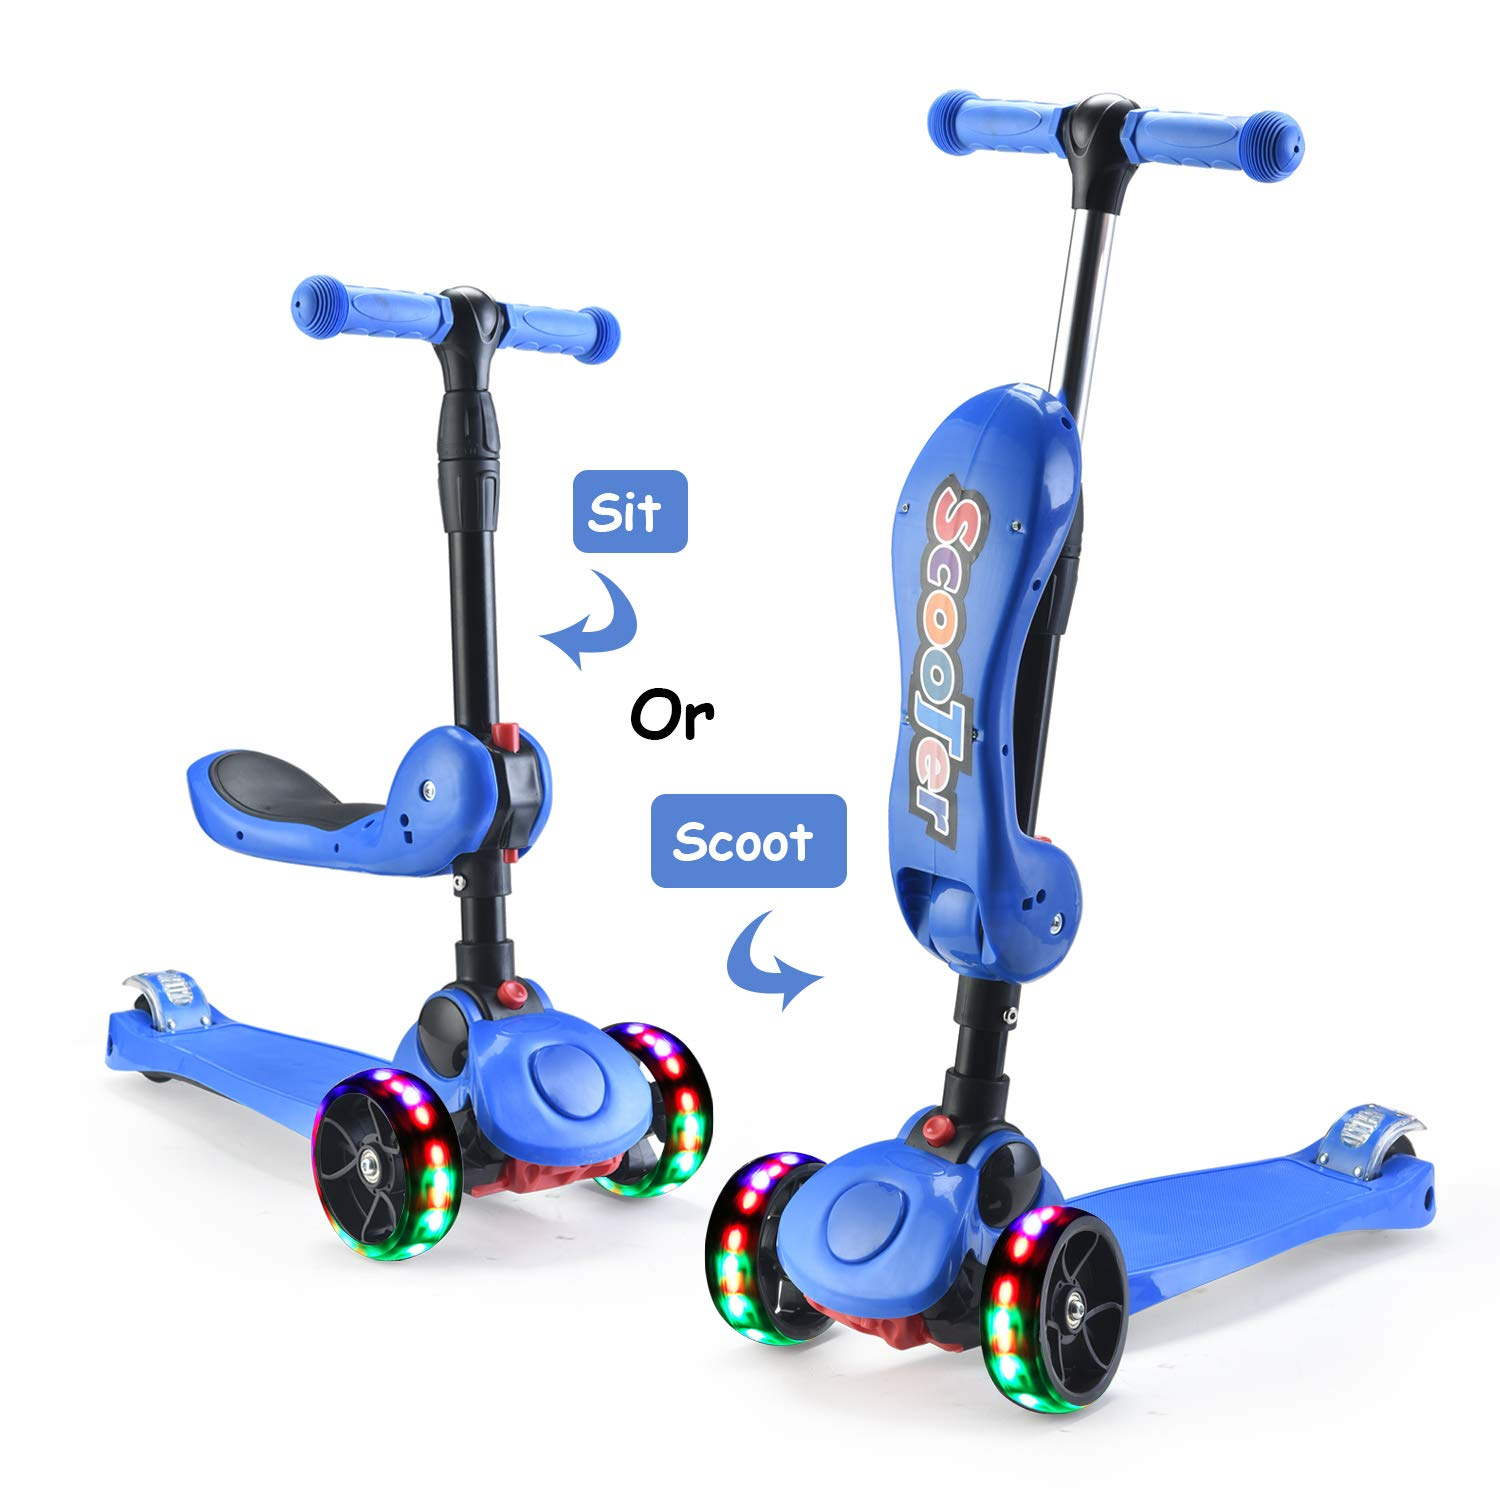 AOODIL 2-in-1 Kick Scooters for Kids Toddler 3 Wheel Scooter for Boys&Girls -Kids Scooter with LED Light Up Wheels -Adjustable HeightWide Deck for Children from 2 to 14 Year-Old by AOODIL